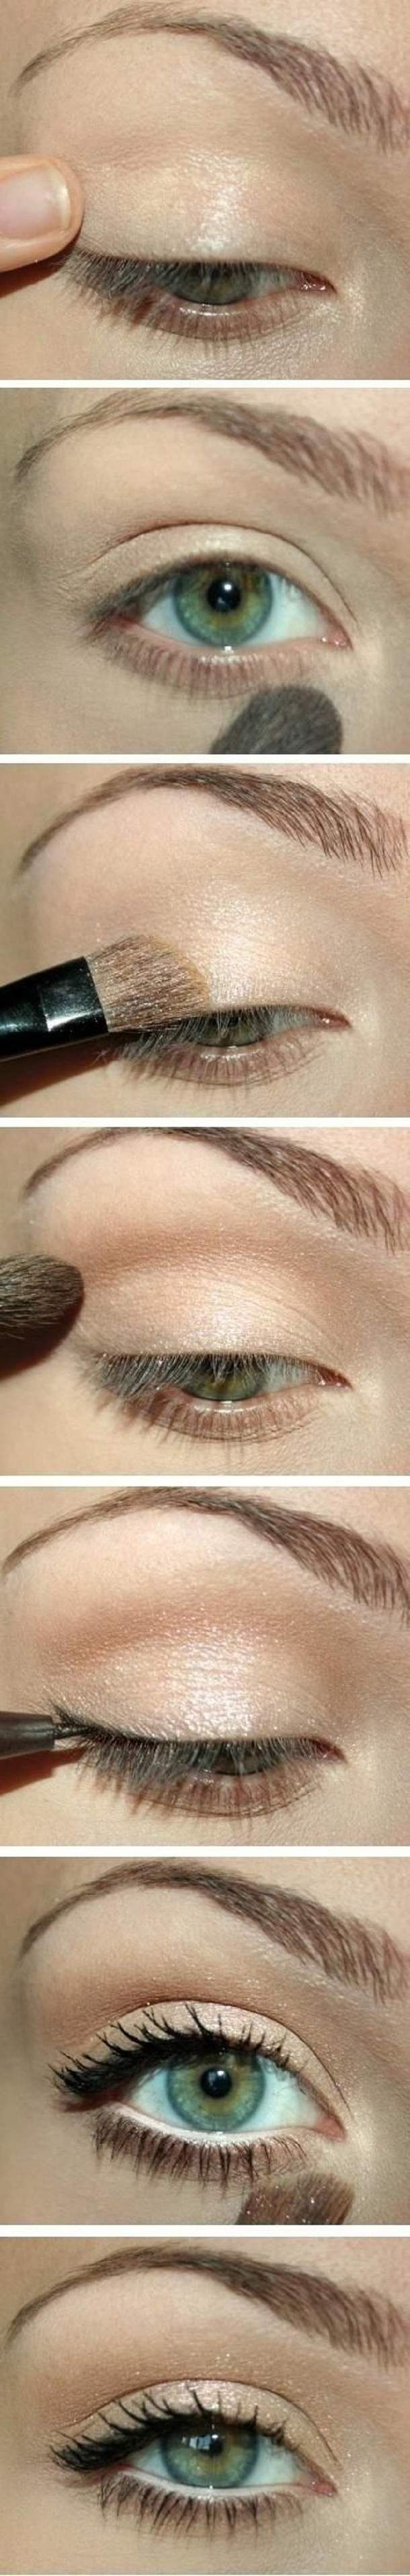 10 Eye Enlarging Makeup Tutorials